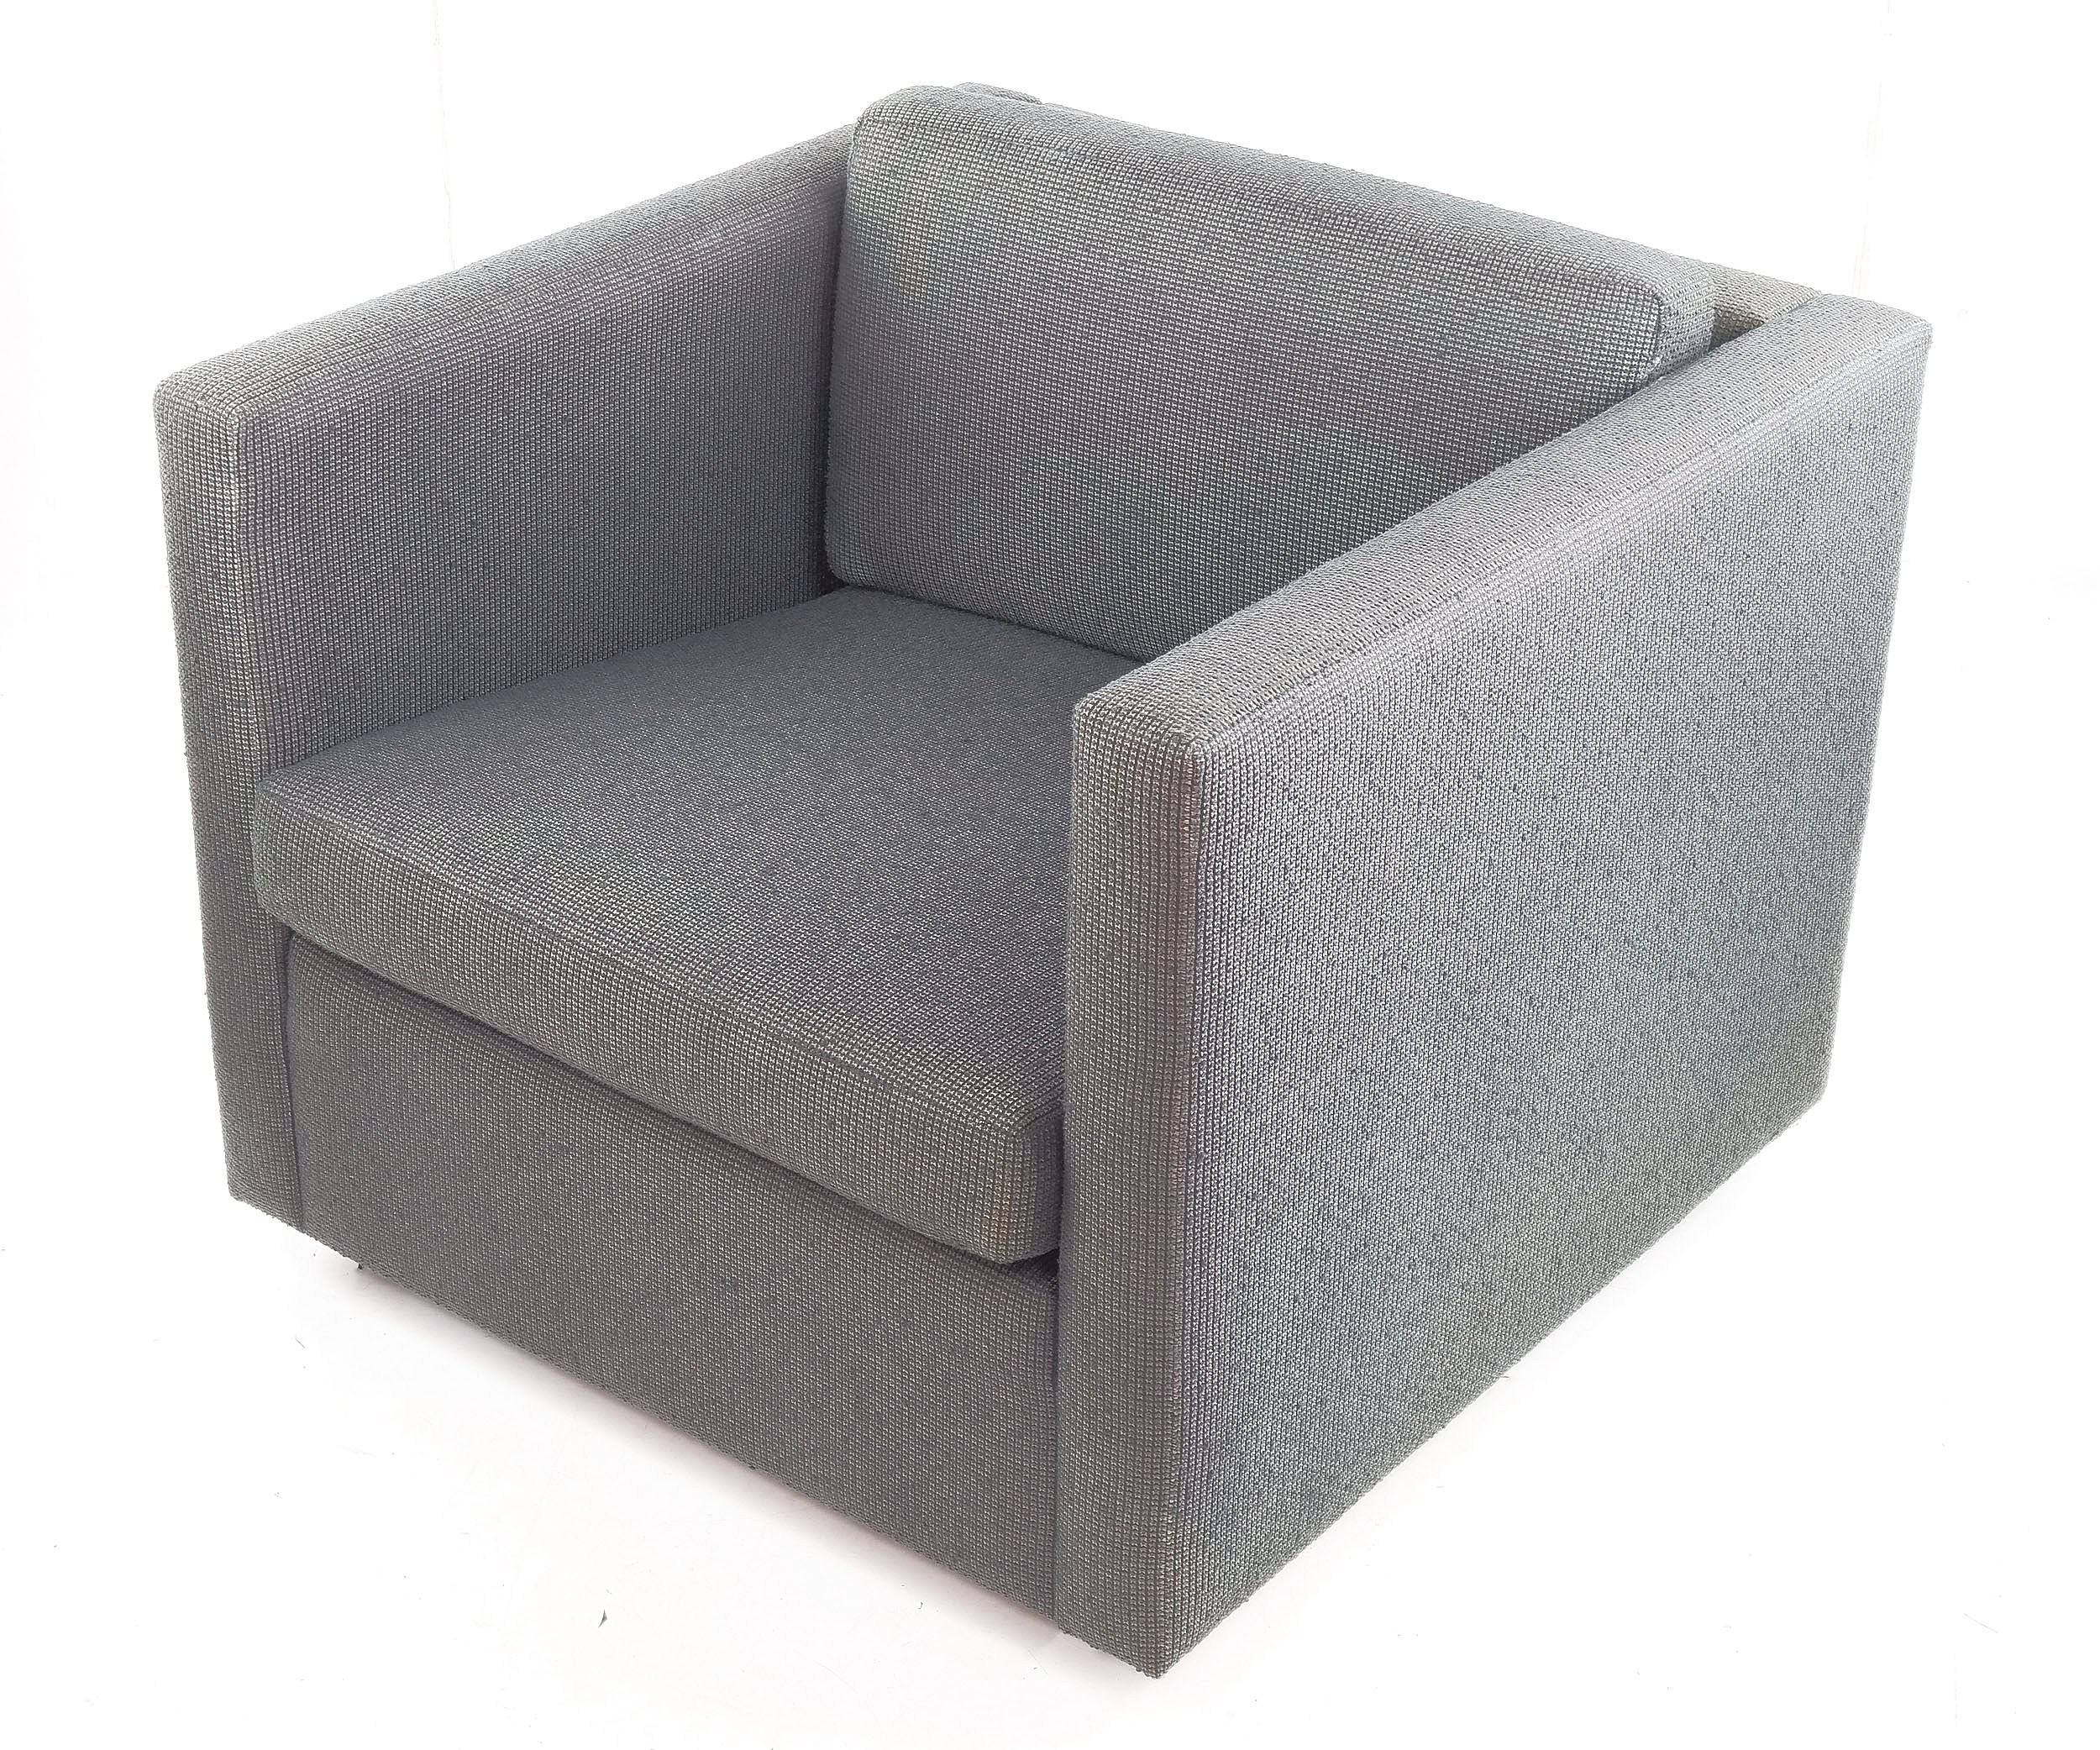 'Walter Knoll Cube Lounge Chair, Designed by Charles Pfister'